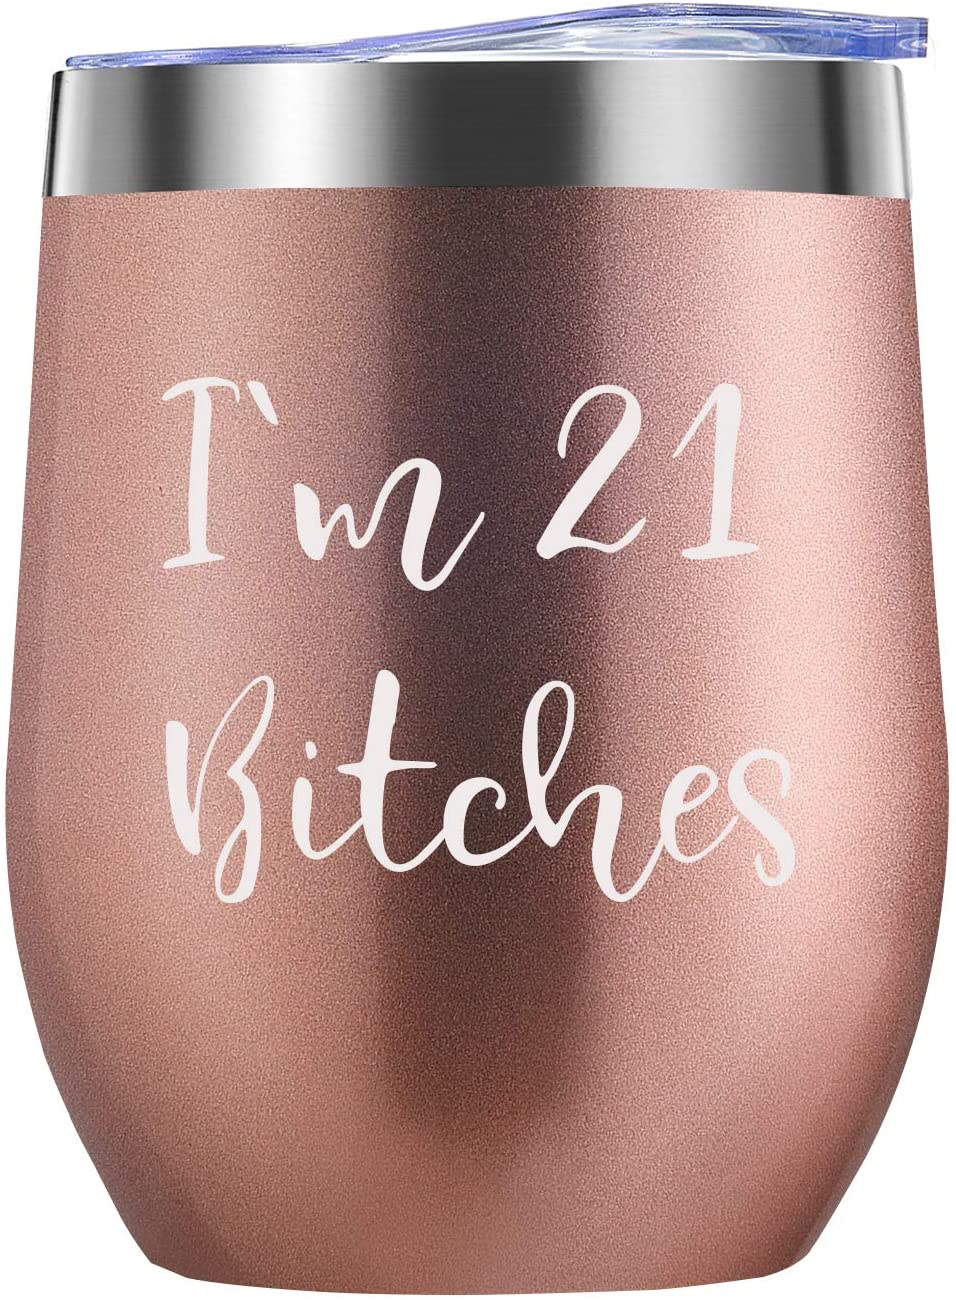 I'm 21 - Funny 21st Birthday Gifts for Women Wine Tumbler- Best 21 Year Old Birthday Gift Ideas for Sisters, Her, Friends, Coworkers